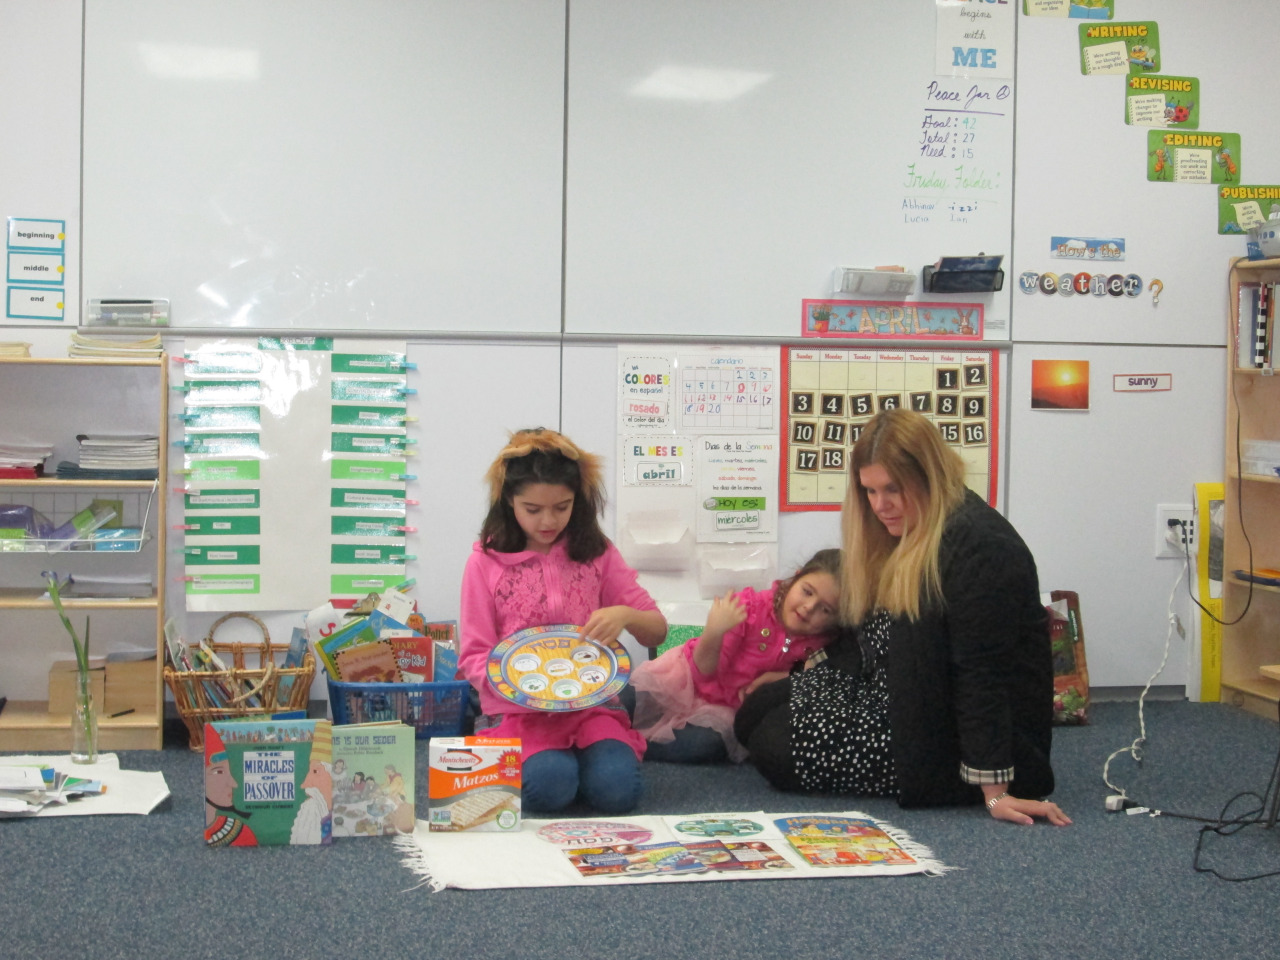 On Wednesday, a second grade Lower Elementary East student shared a presentation about Passover with her classmates, including the history and traditions of the holiday and objects associated with it.